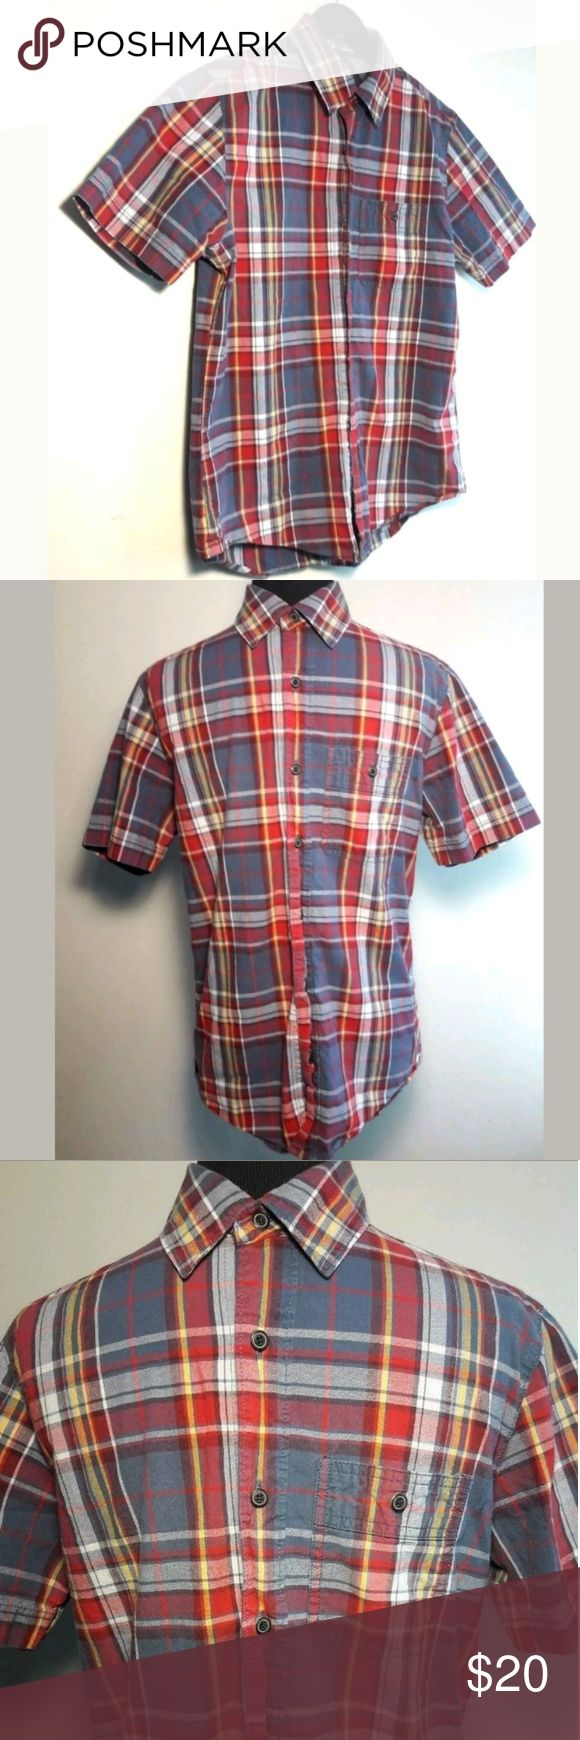 Old Navu Mens Casual Button Down Shirt Size Small Old Navy Men's Casual Shirt Size Small Short Sleeve Multi-Color Plaid Button Down Top  Pre-owned in Excellent condition.  Please be sure to view all images.  Thank you for Looking & Sharing Happy Poshing😄 Old Navy Shirts Casual Button Down Shirts